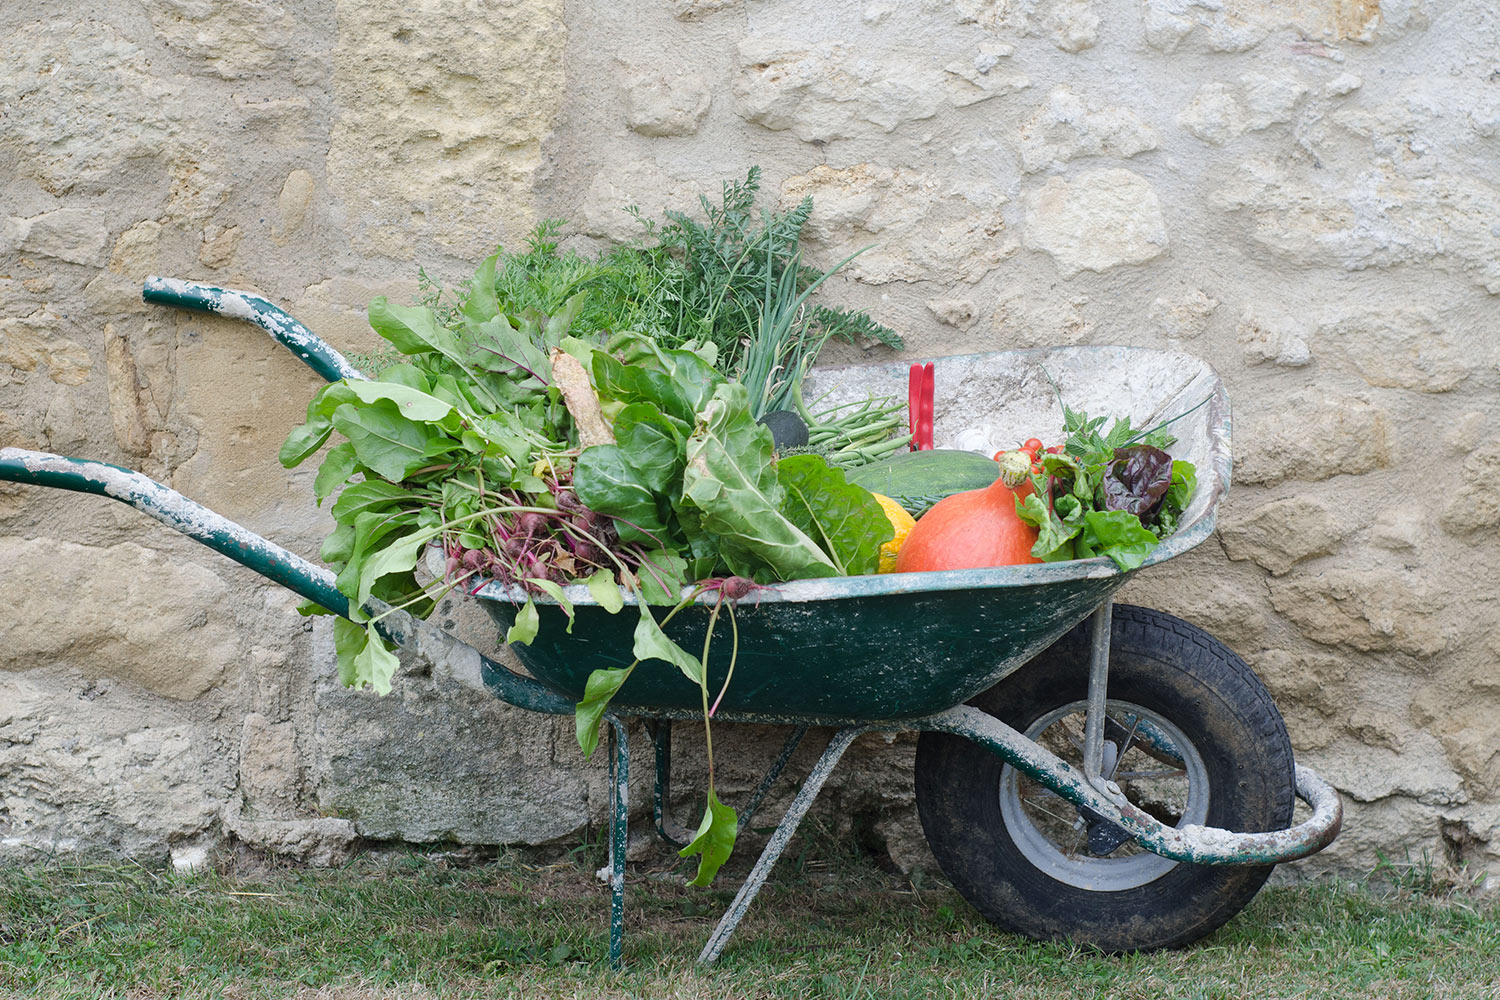 Wheelbarrow-veg.jpg